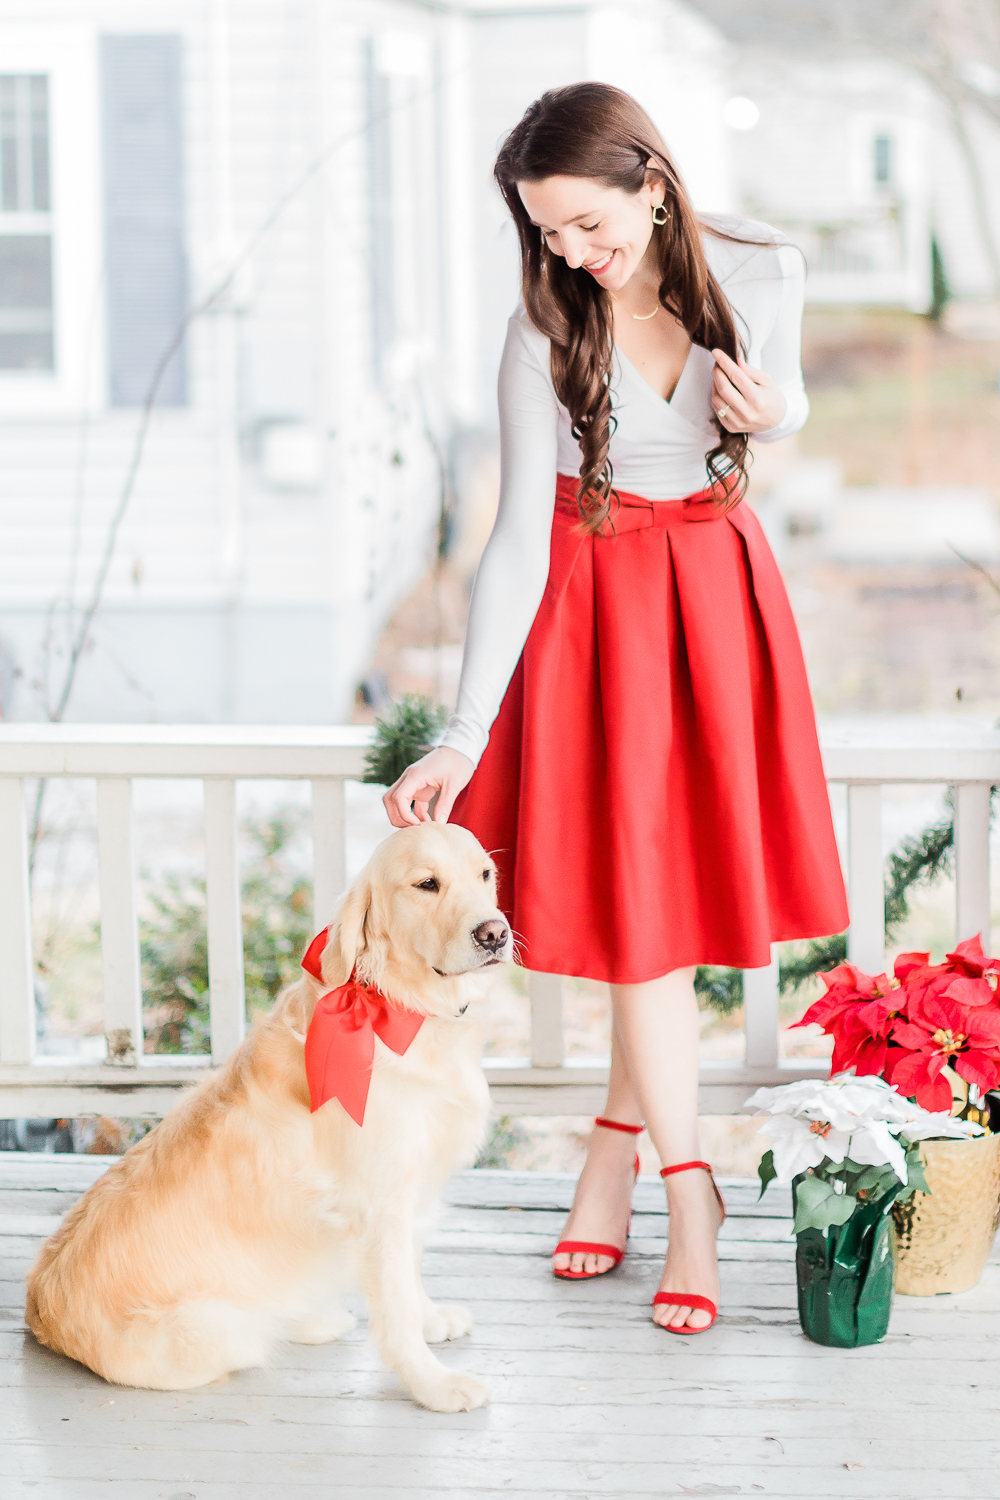 Affordable fashion blogger Stephanie Ziajka shares her favorite preppy Christmas party outfits on Diary of a Debutante